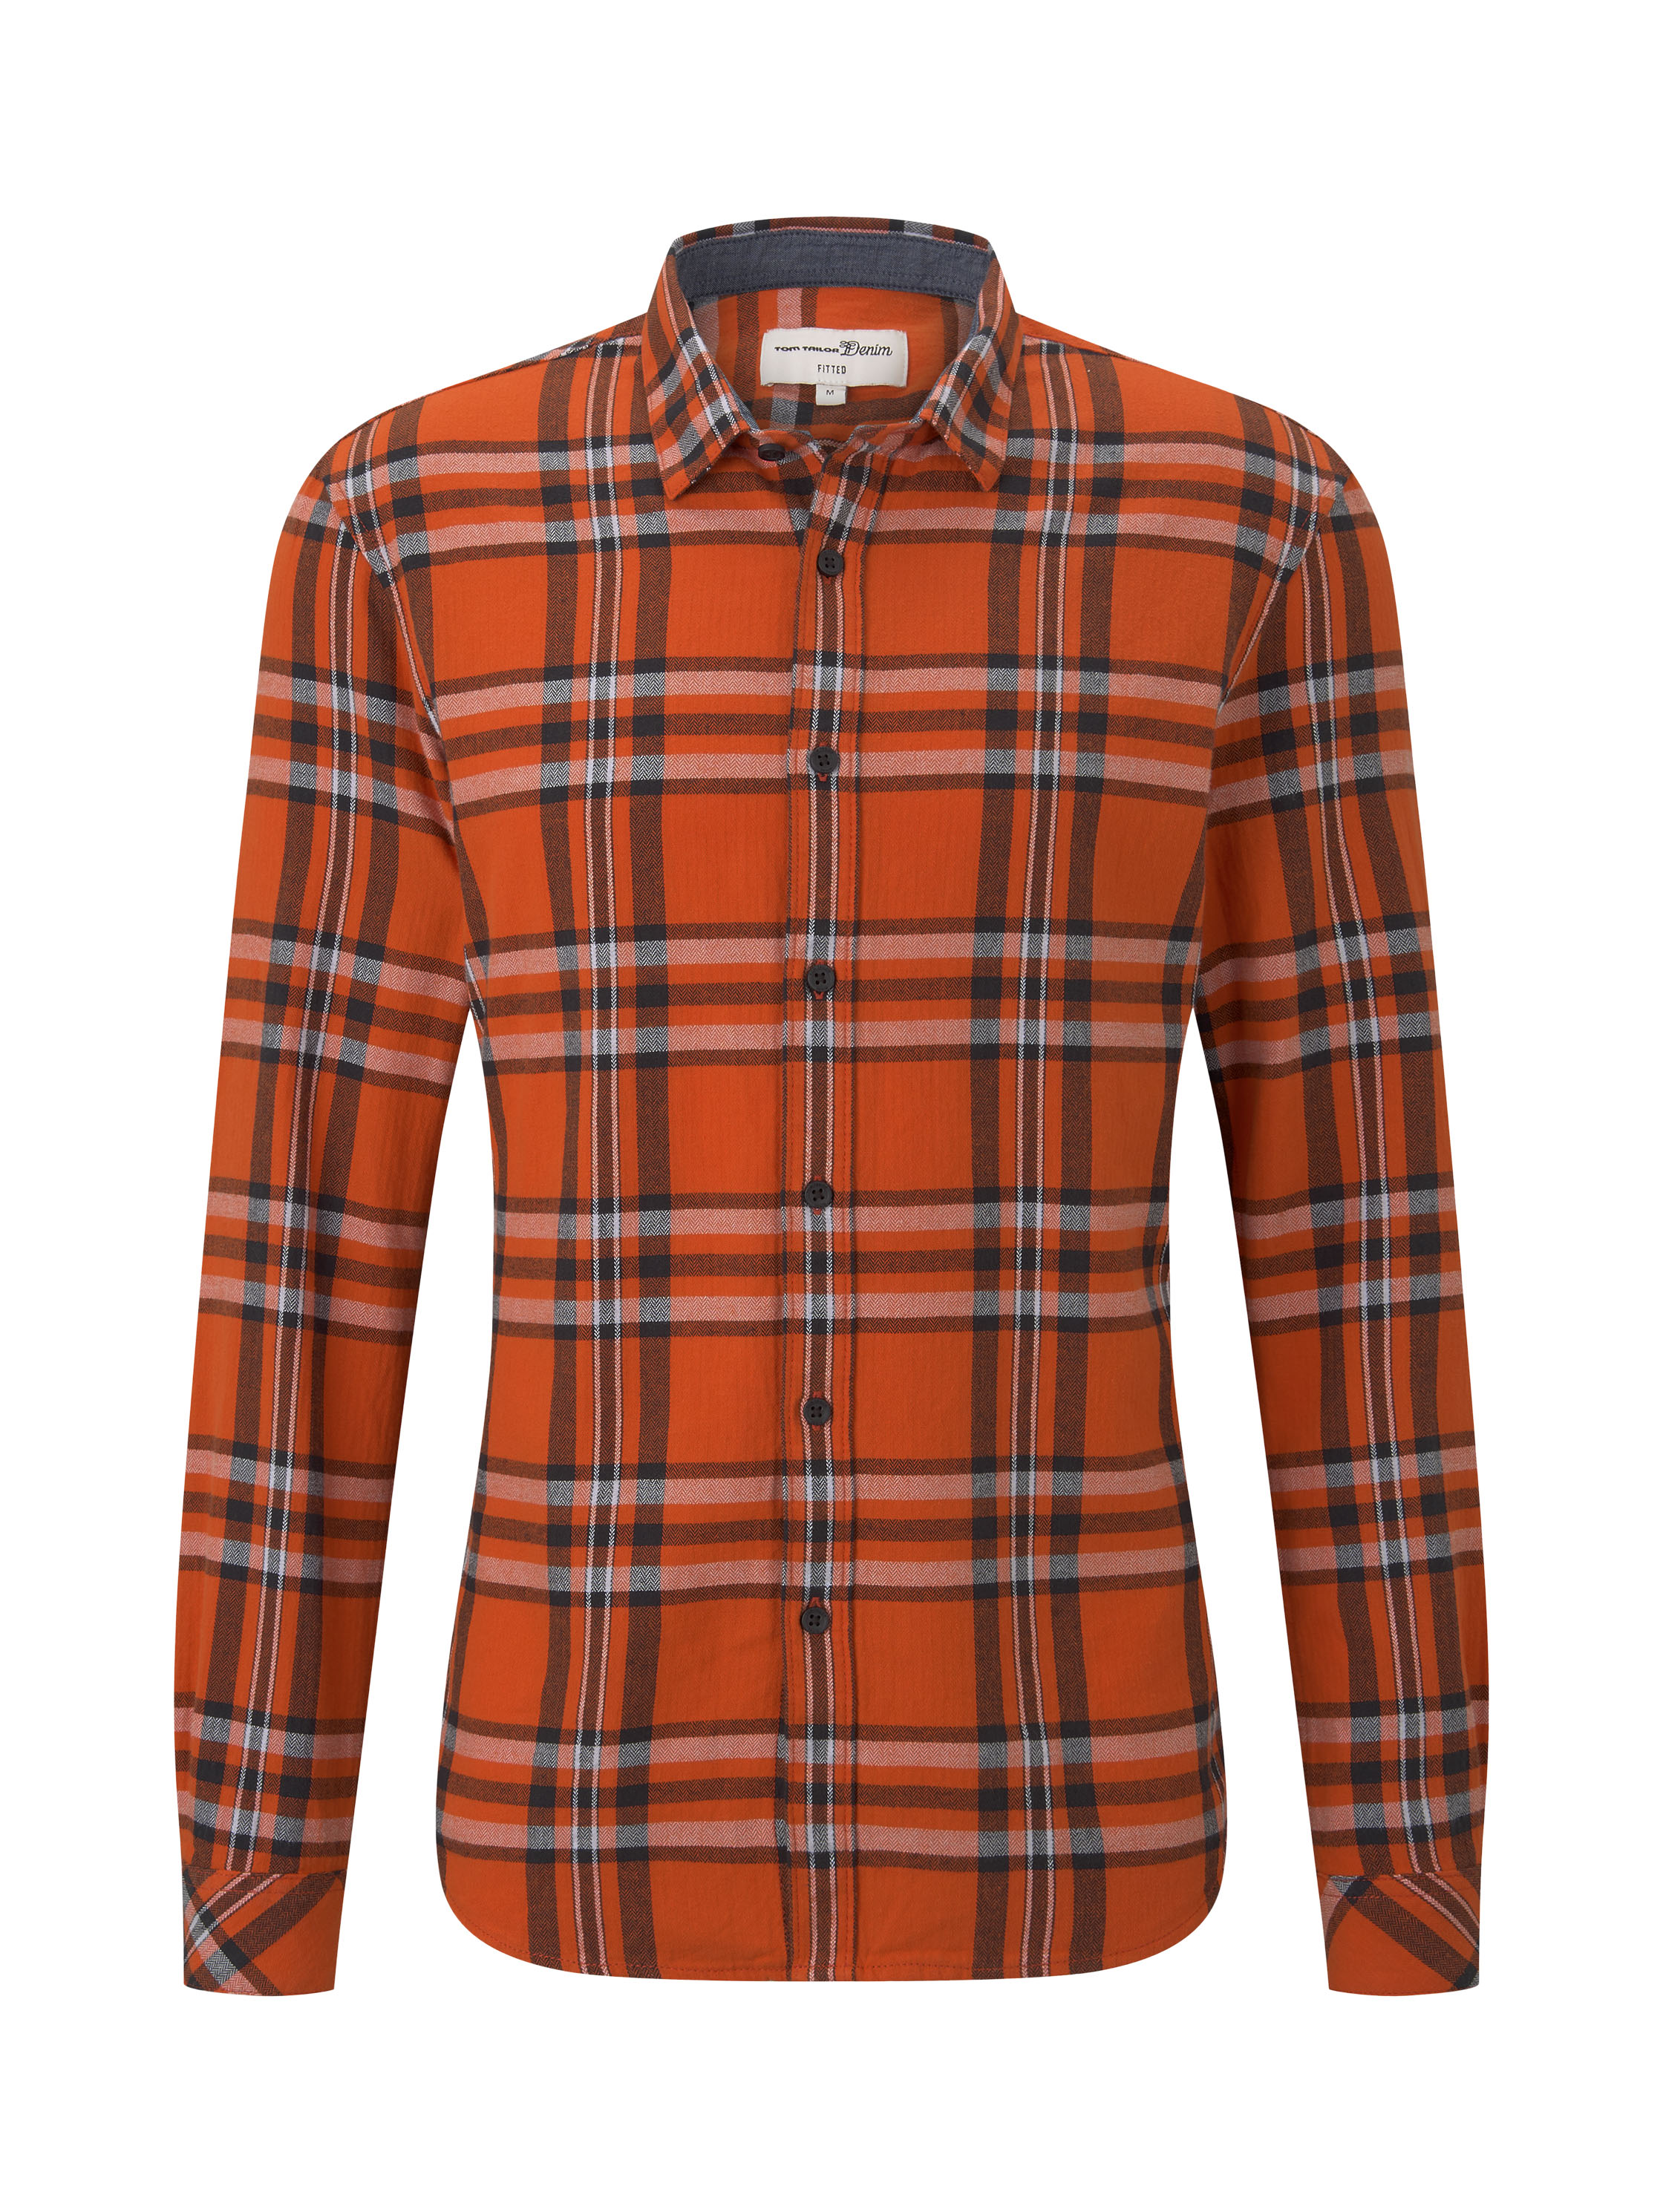 authentic grindle check shirt, bright red black check        Red